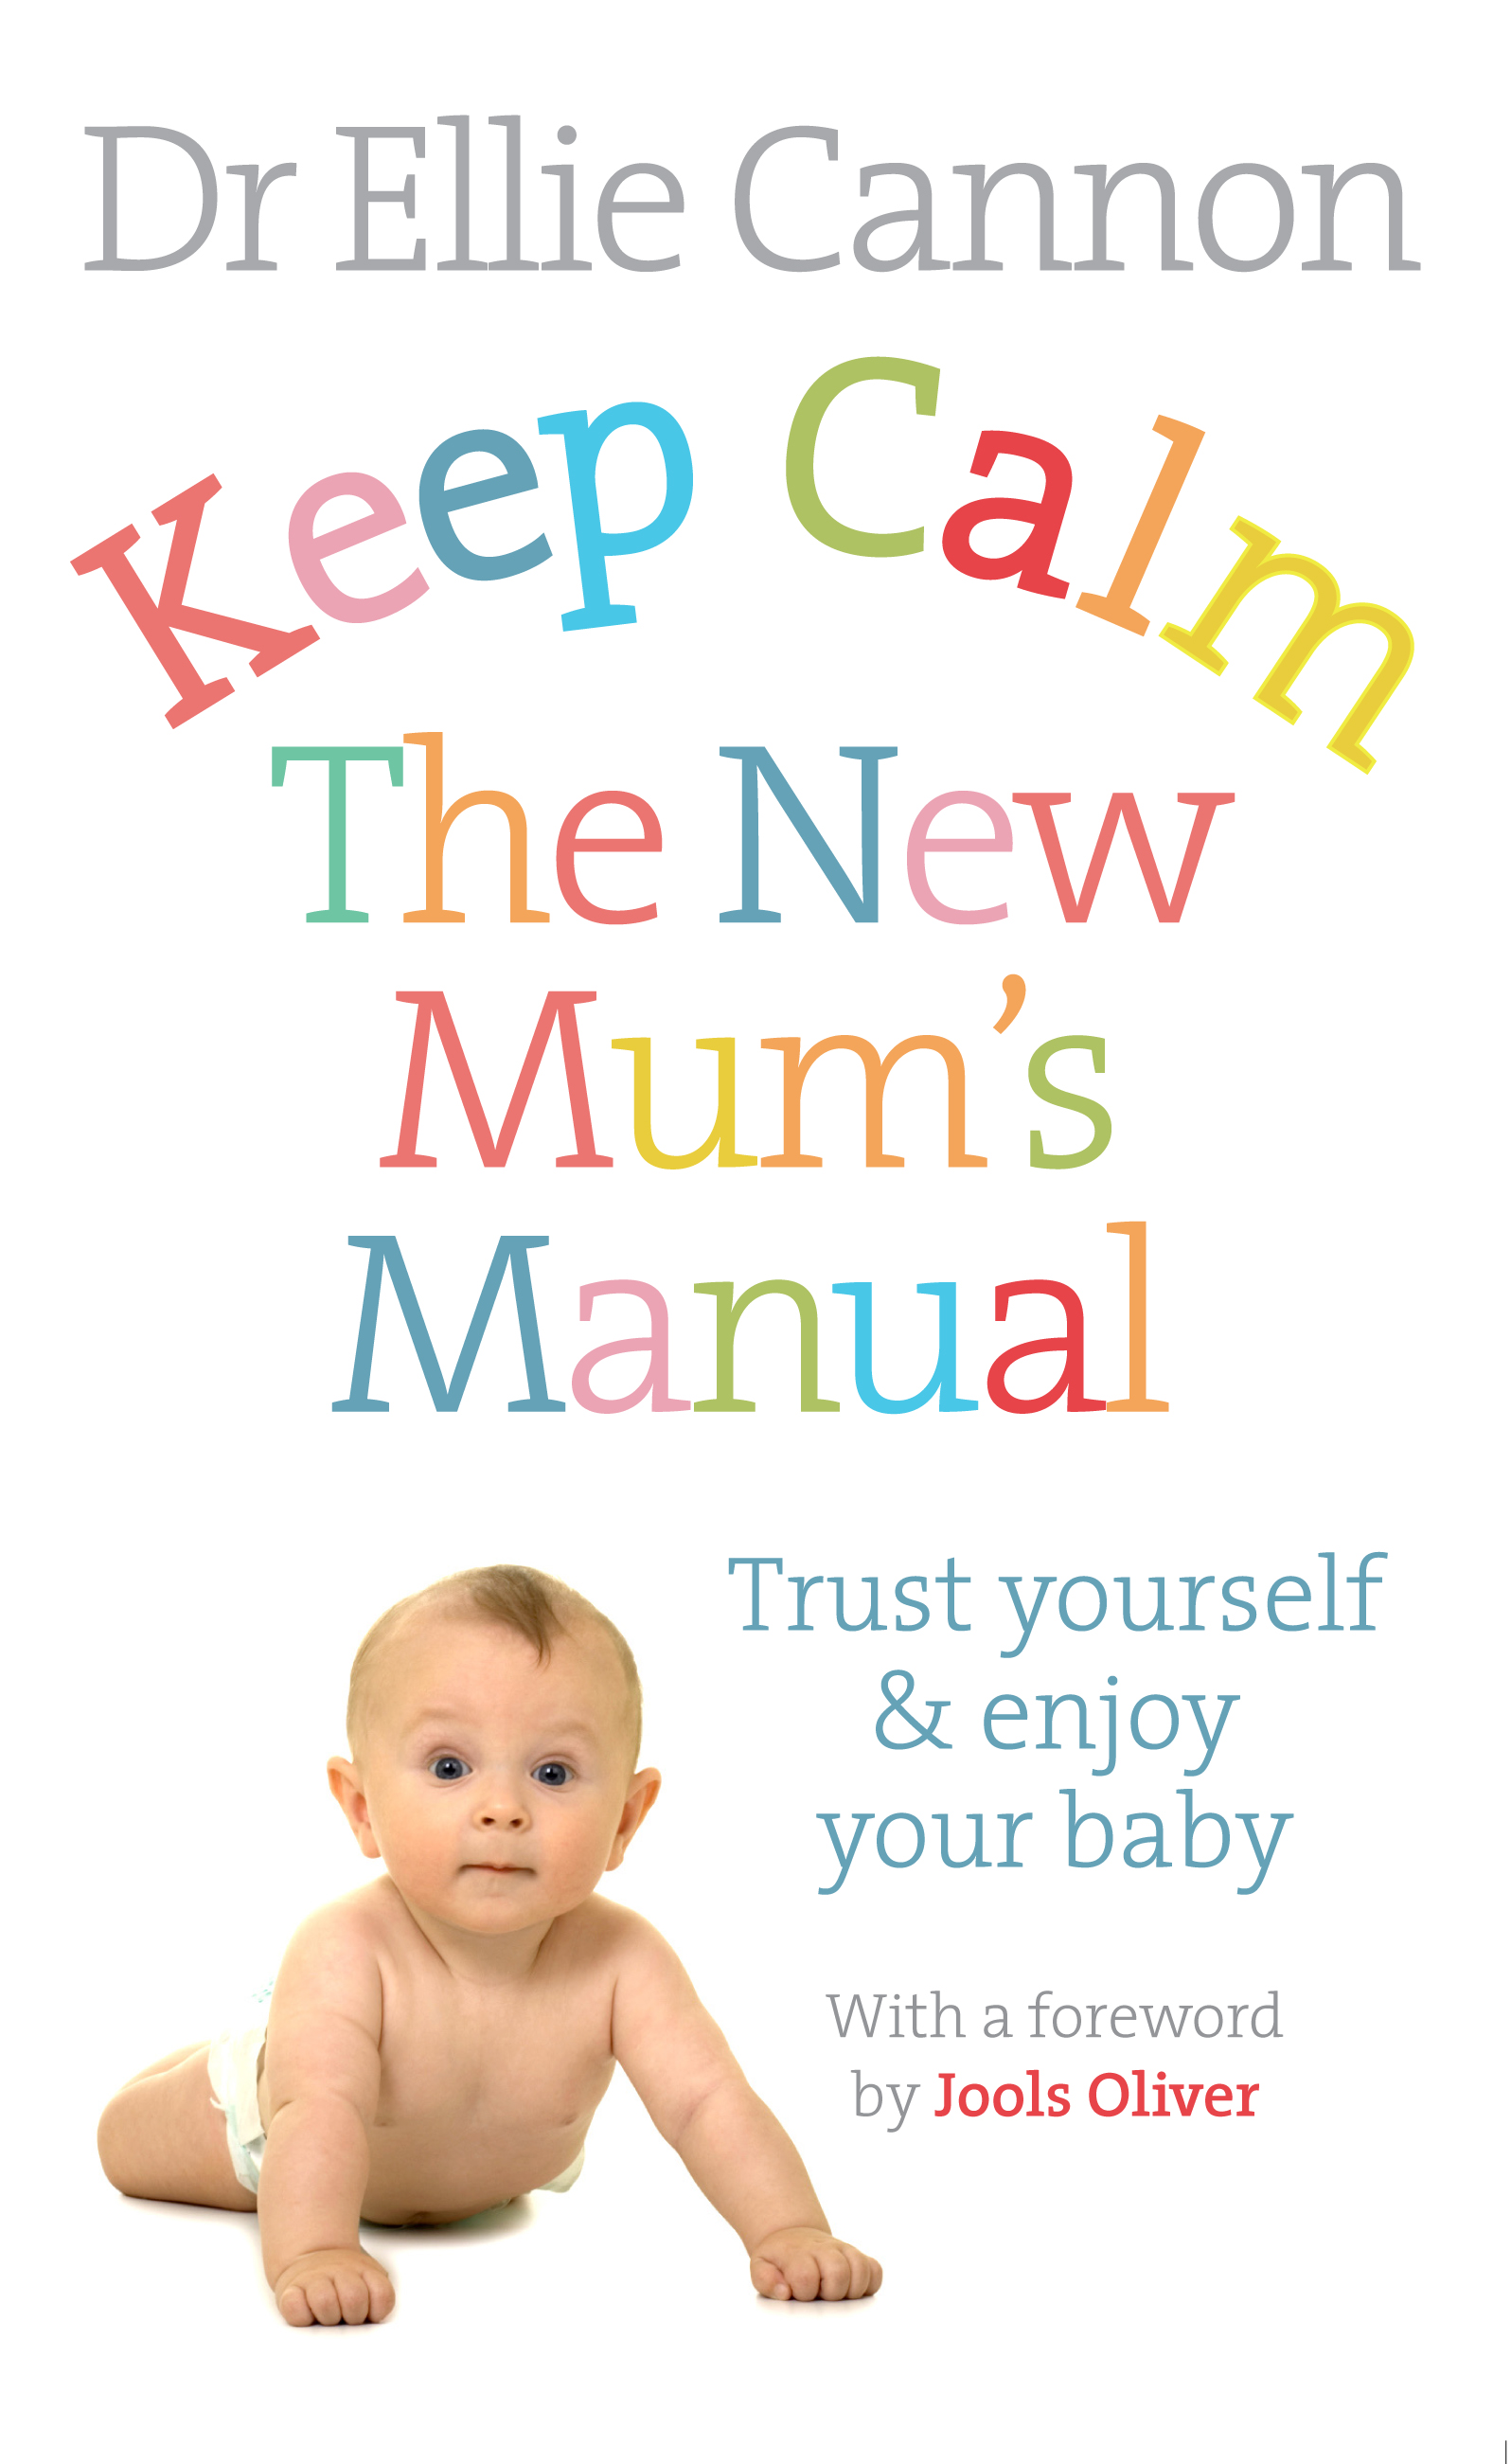 keep calm the new mum's manual NEW COVER